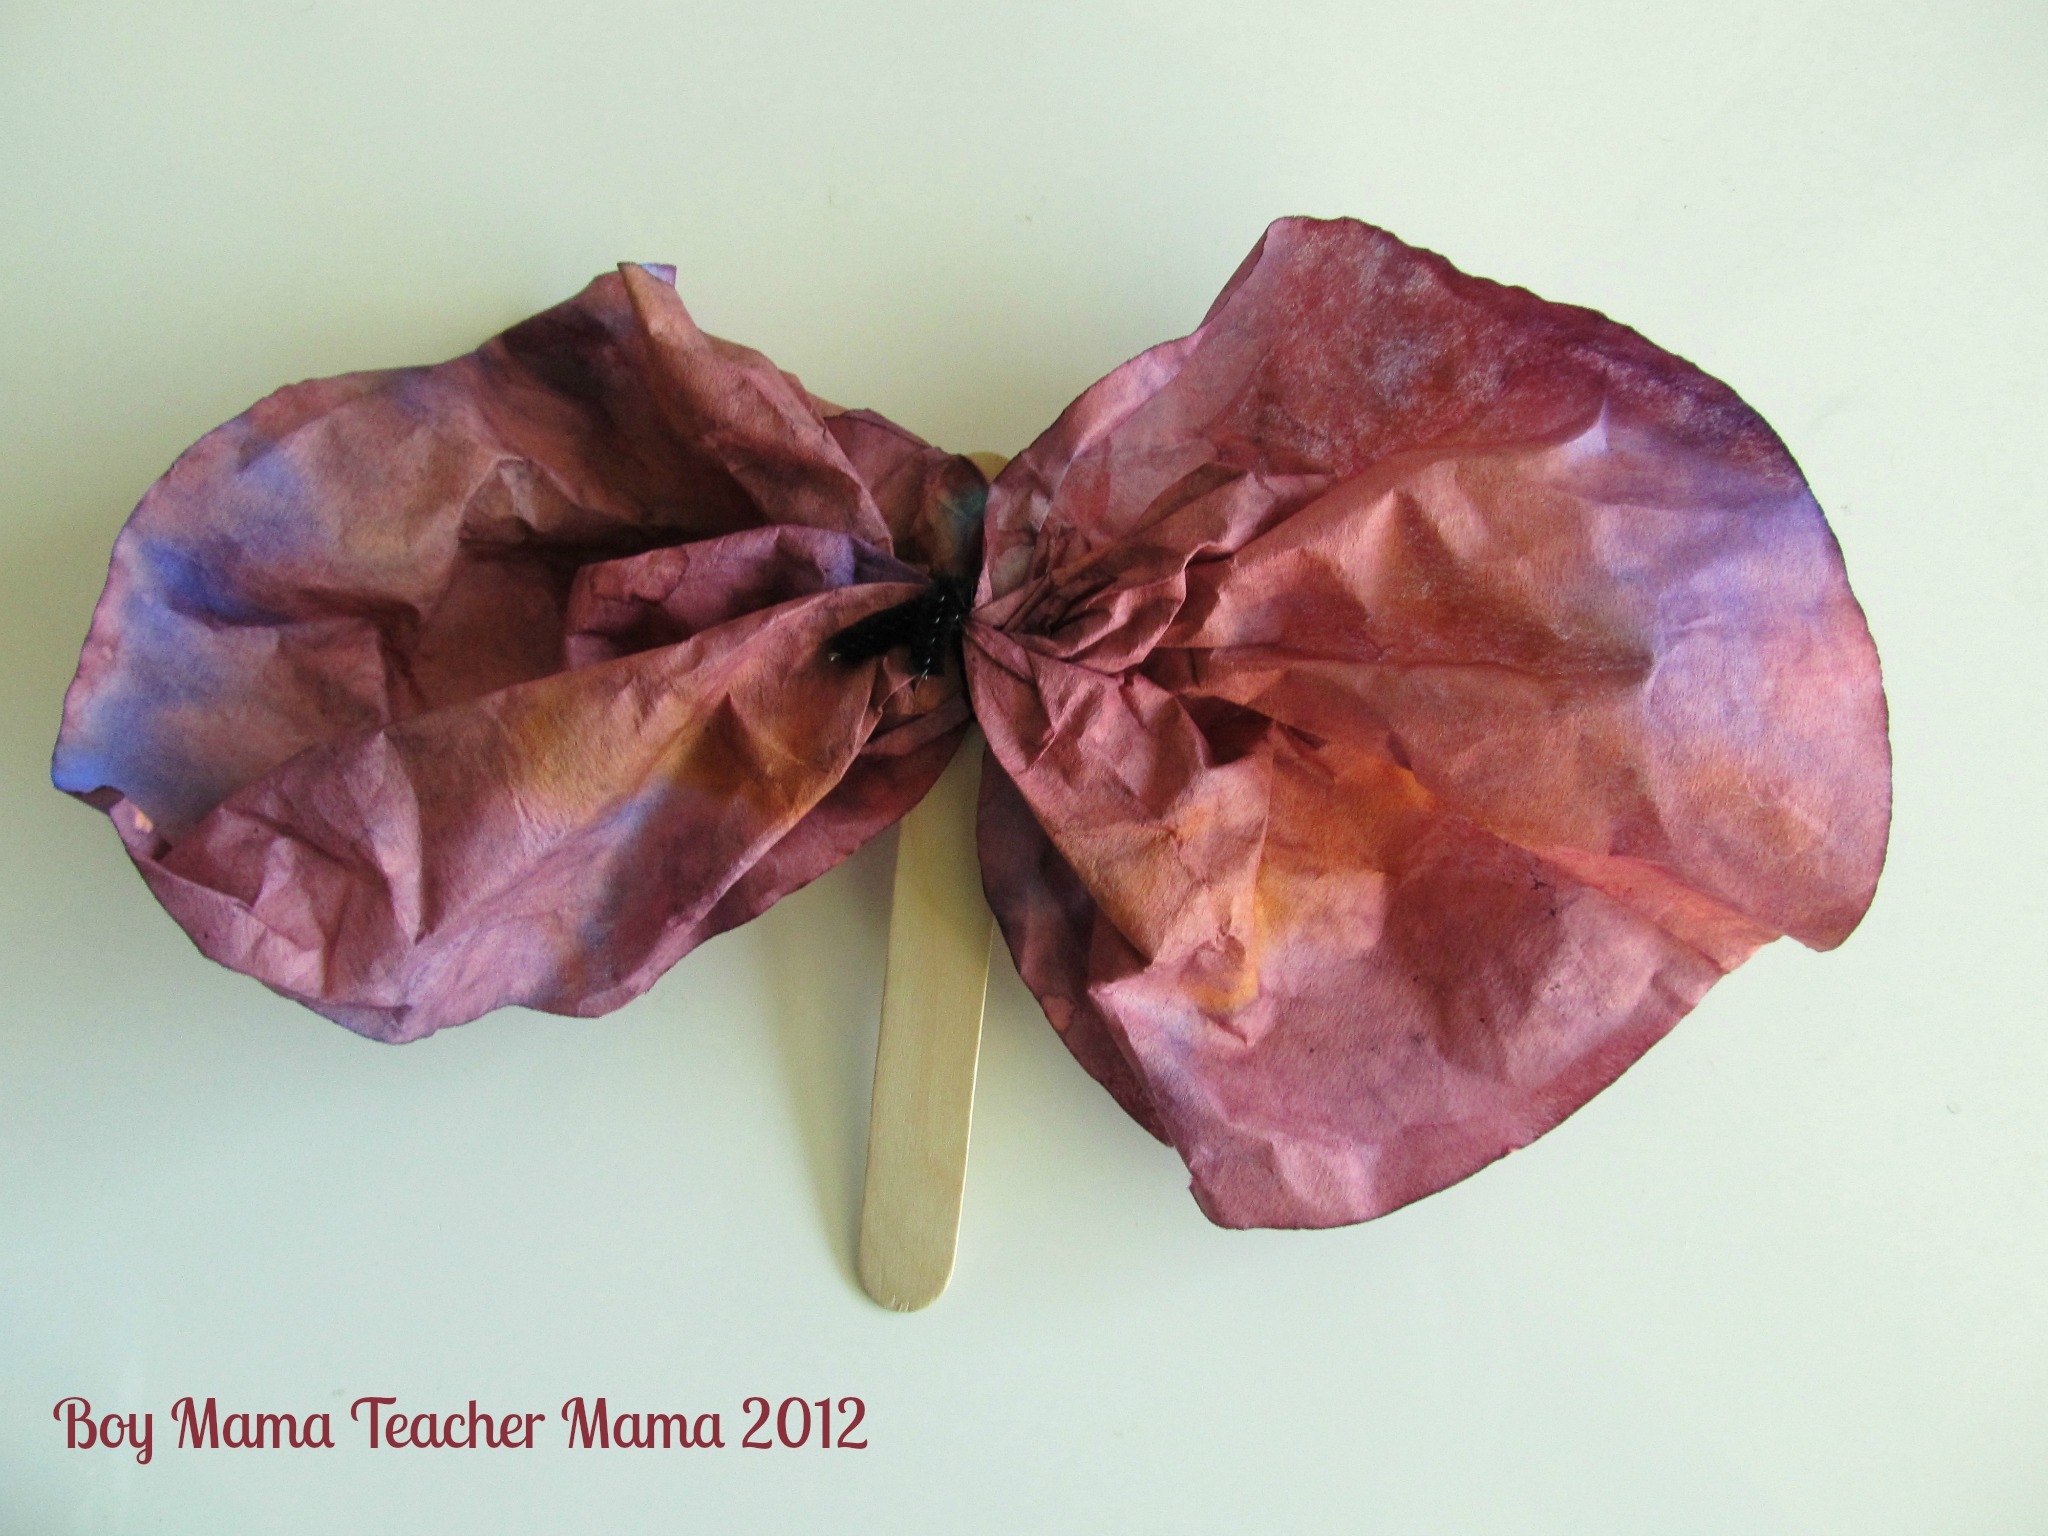 Boy Mama Teacher Mama: Coffee Filter Butterflies, or not...